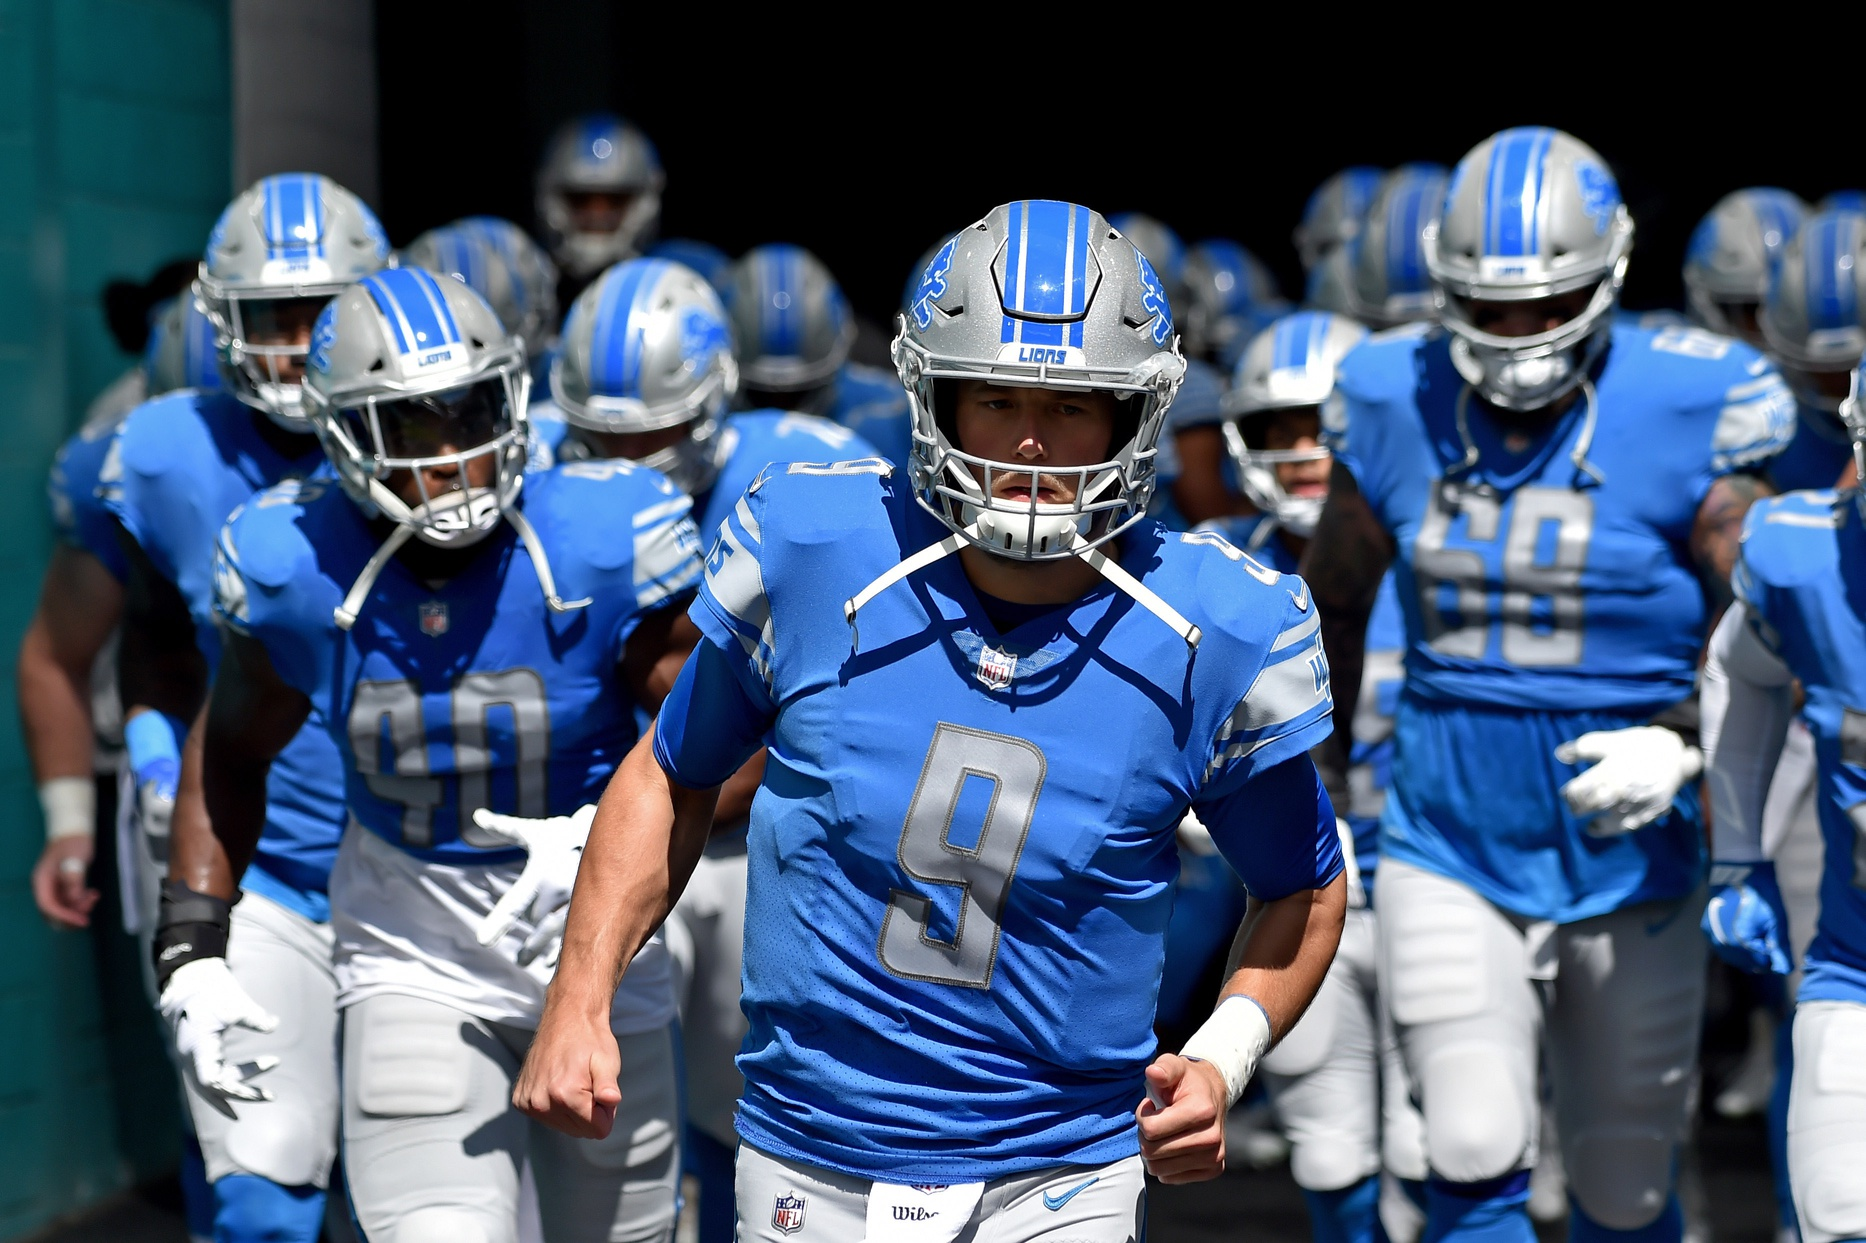 After Wife's Brain Surgery, Stafford 'Happy' To Be Back On Field With Lions